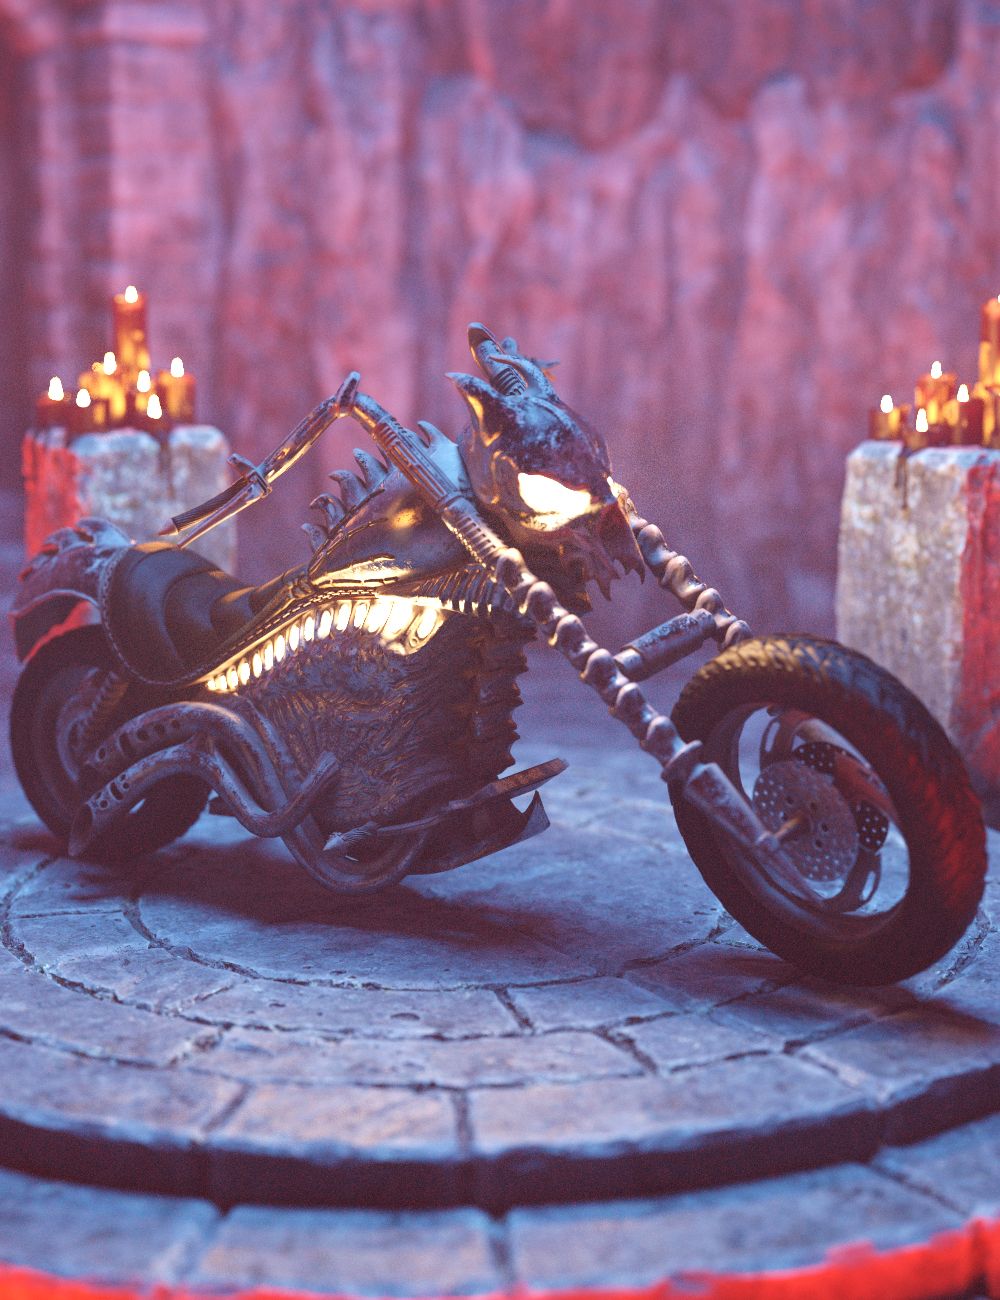 Hell Motorcycle by: Charlie, 3D Models by Daz 3D